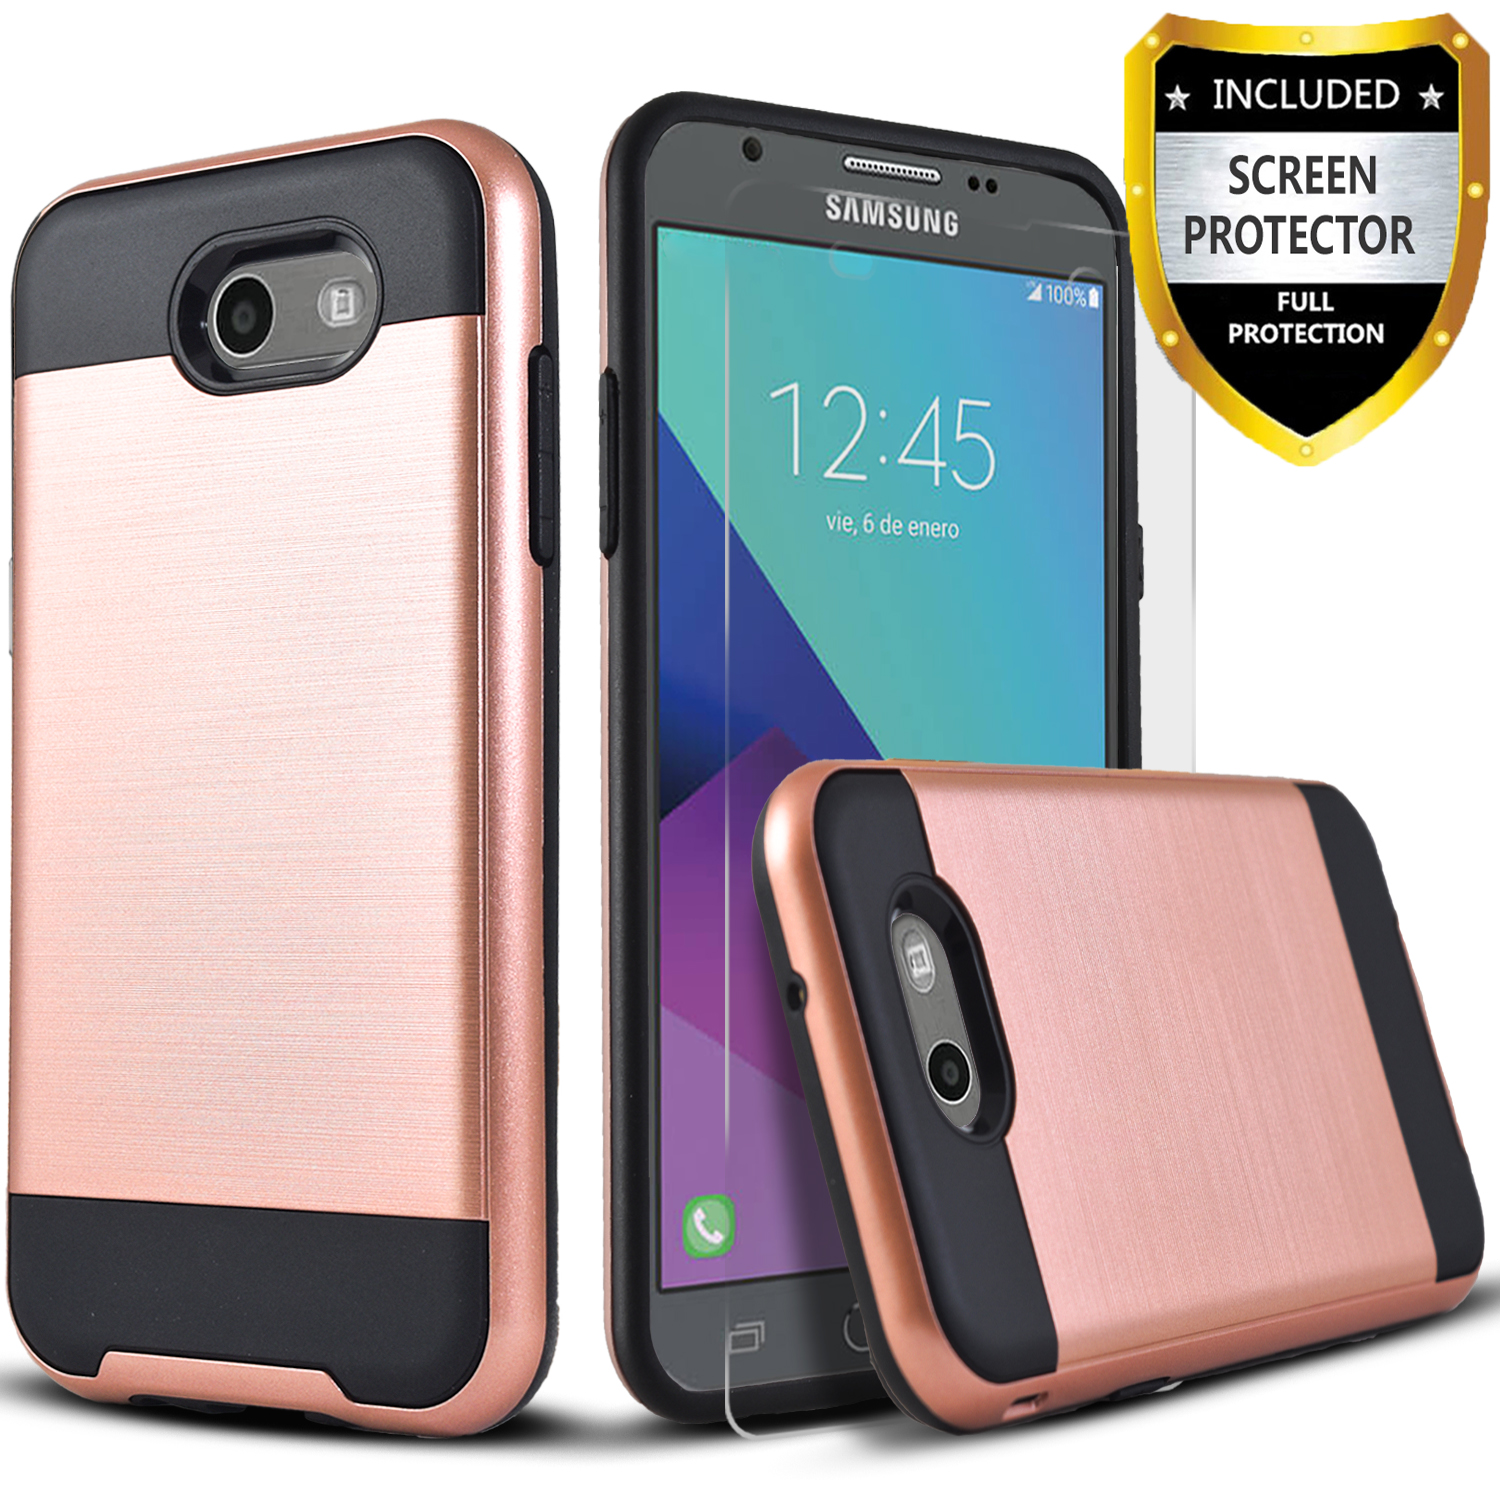 Galaxy J7 V Case, Galaxy J7 Perx Case, Galaxy J7 Sky Pro Case, 2-Piece Style Hybrid Shockproof Hard Case Cover with [Premium Screen Protector] Hybird Shockproof And Circlemalls Stylus Pen (Rose Gold)